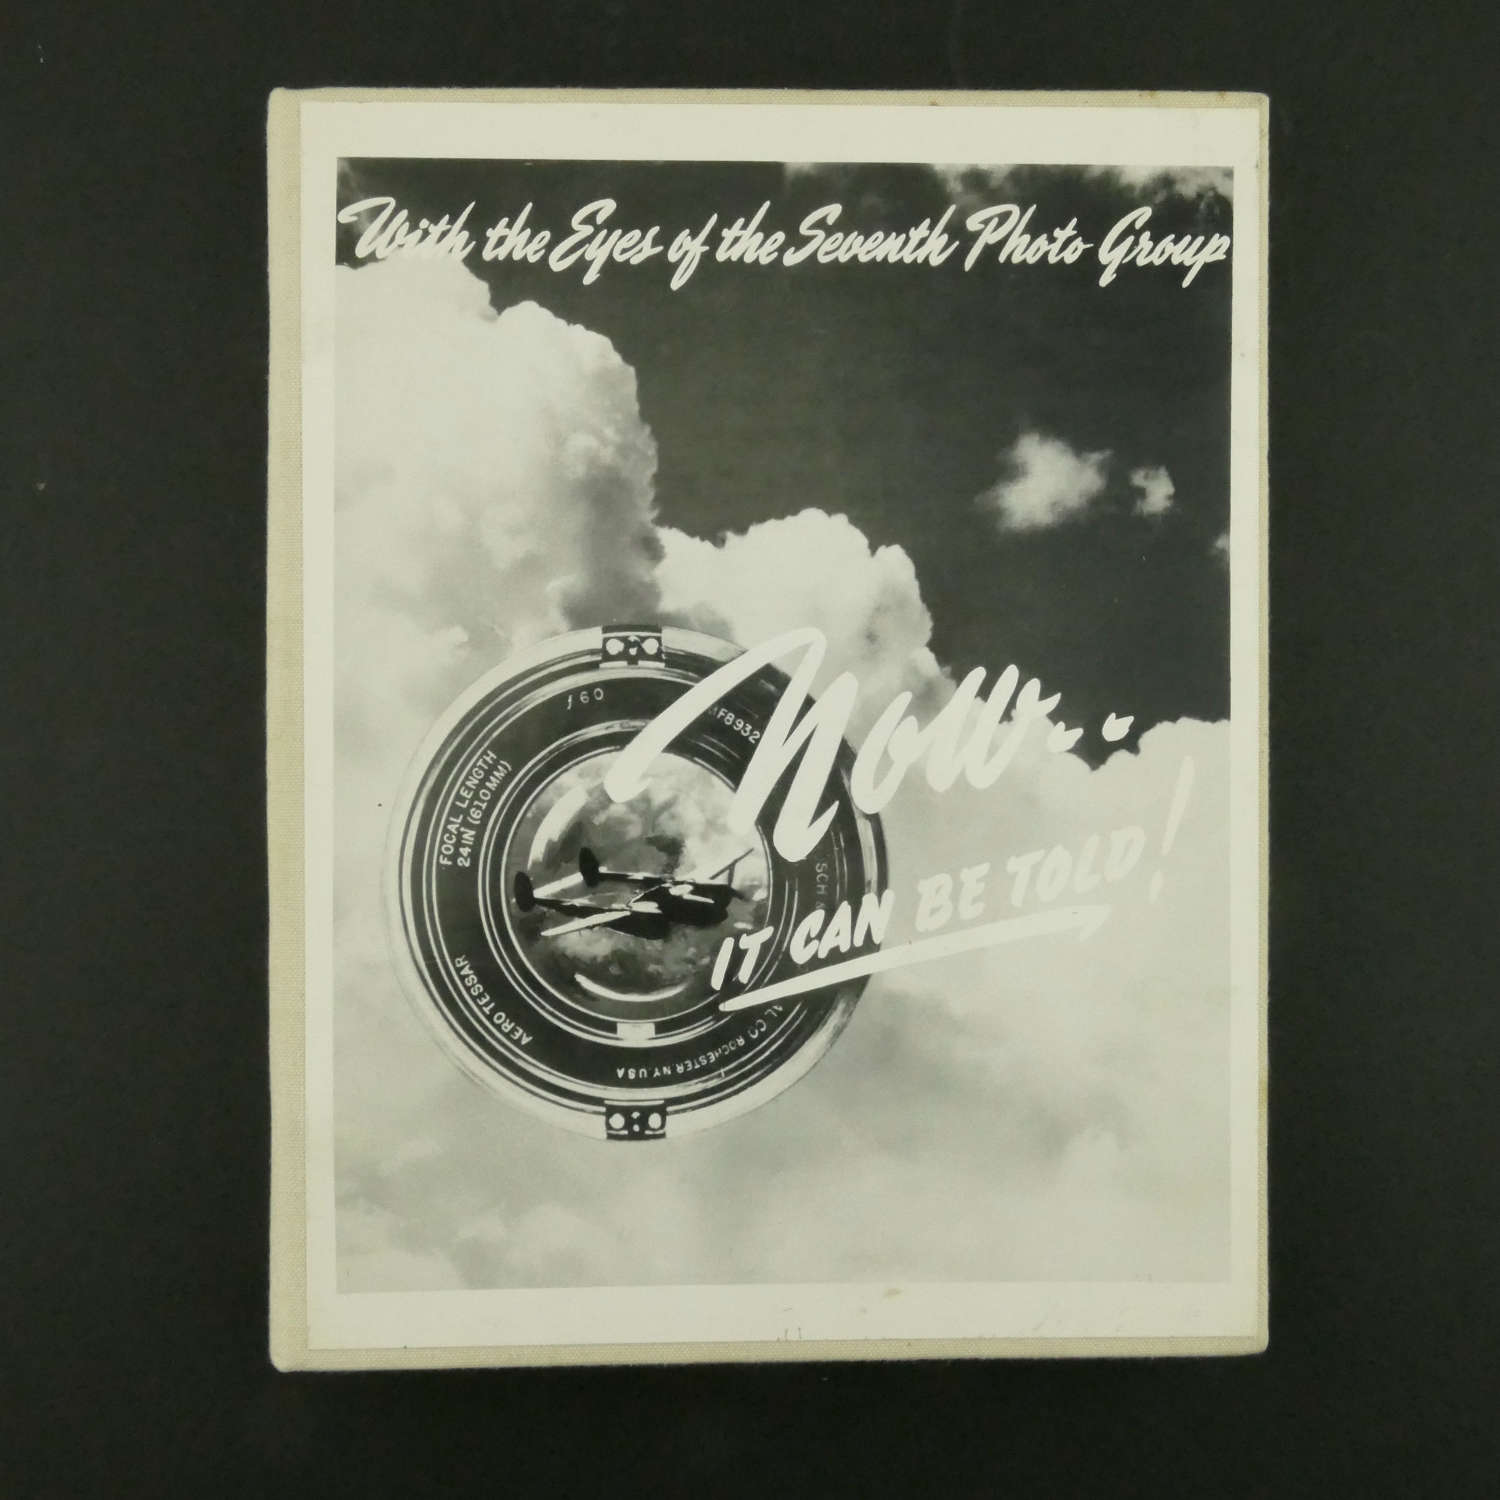 USAAF - With the Eyes of the Seventh Photo Group - reprint